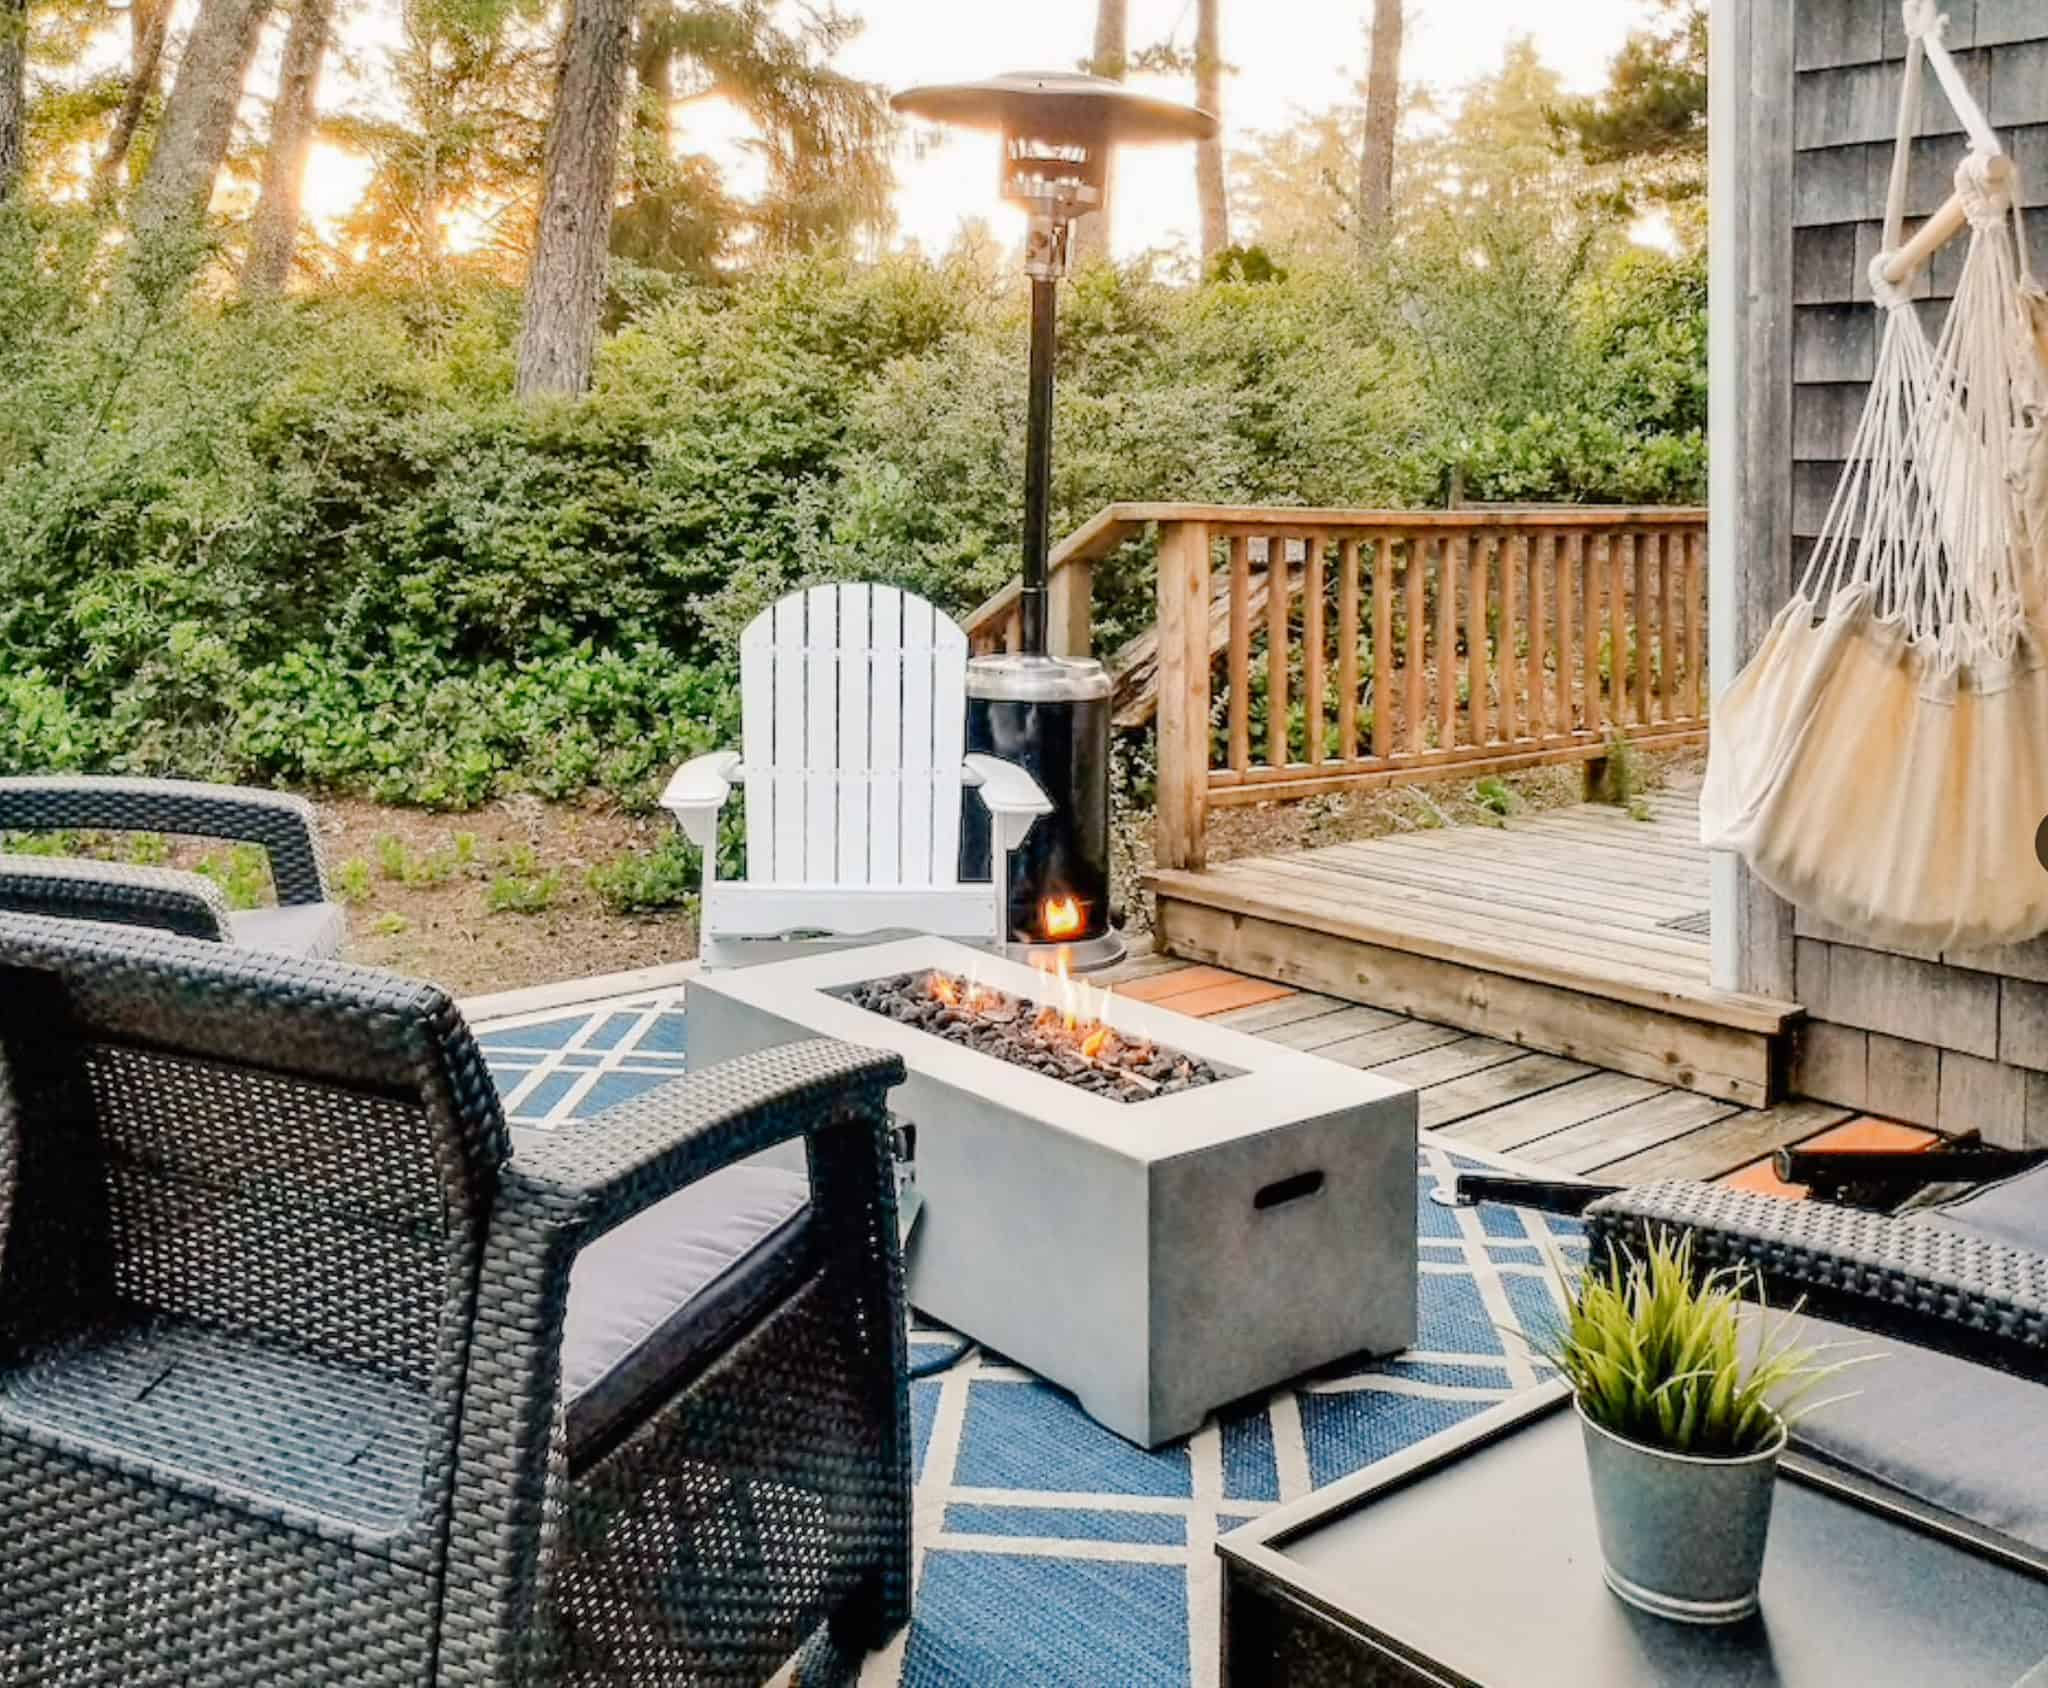 view of a patio with a gas fire place and hammock